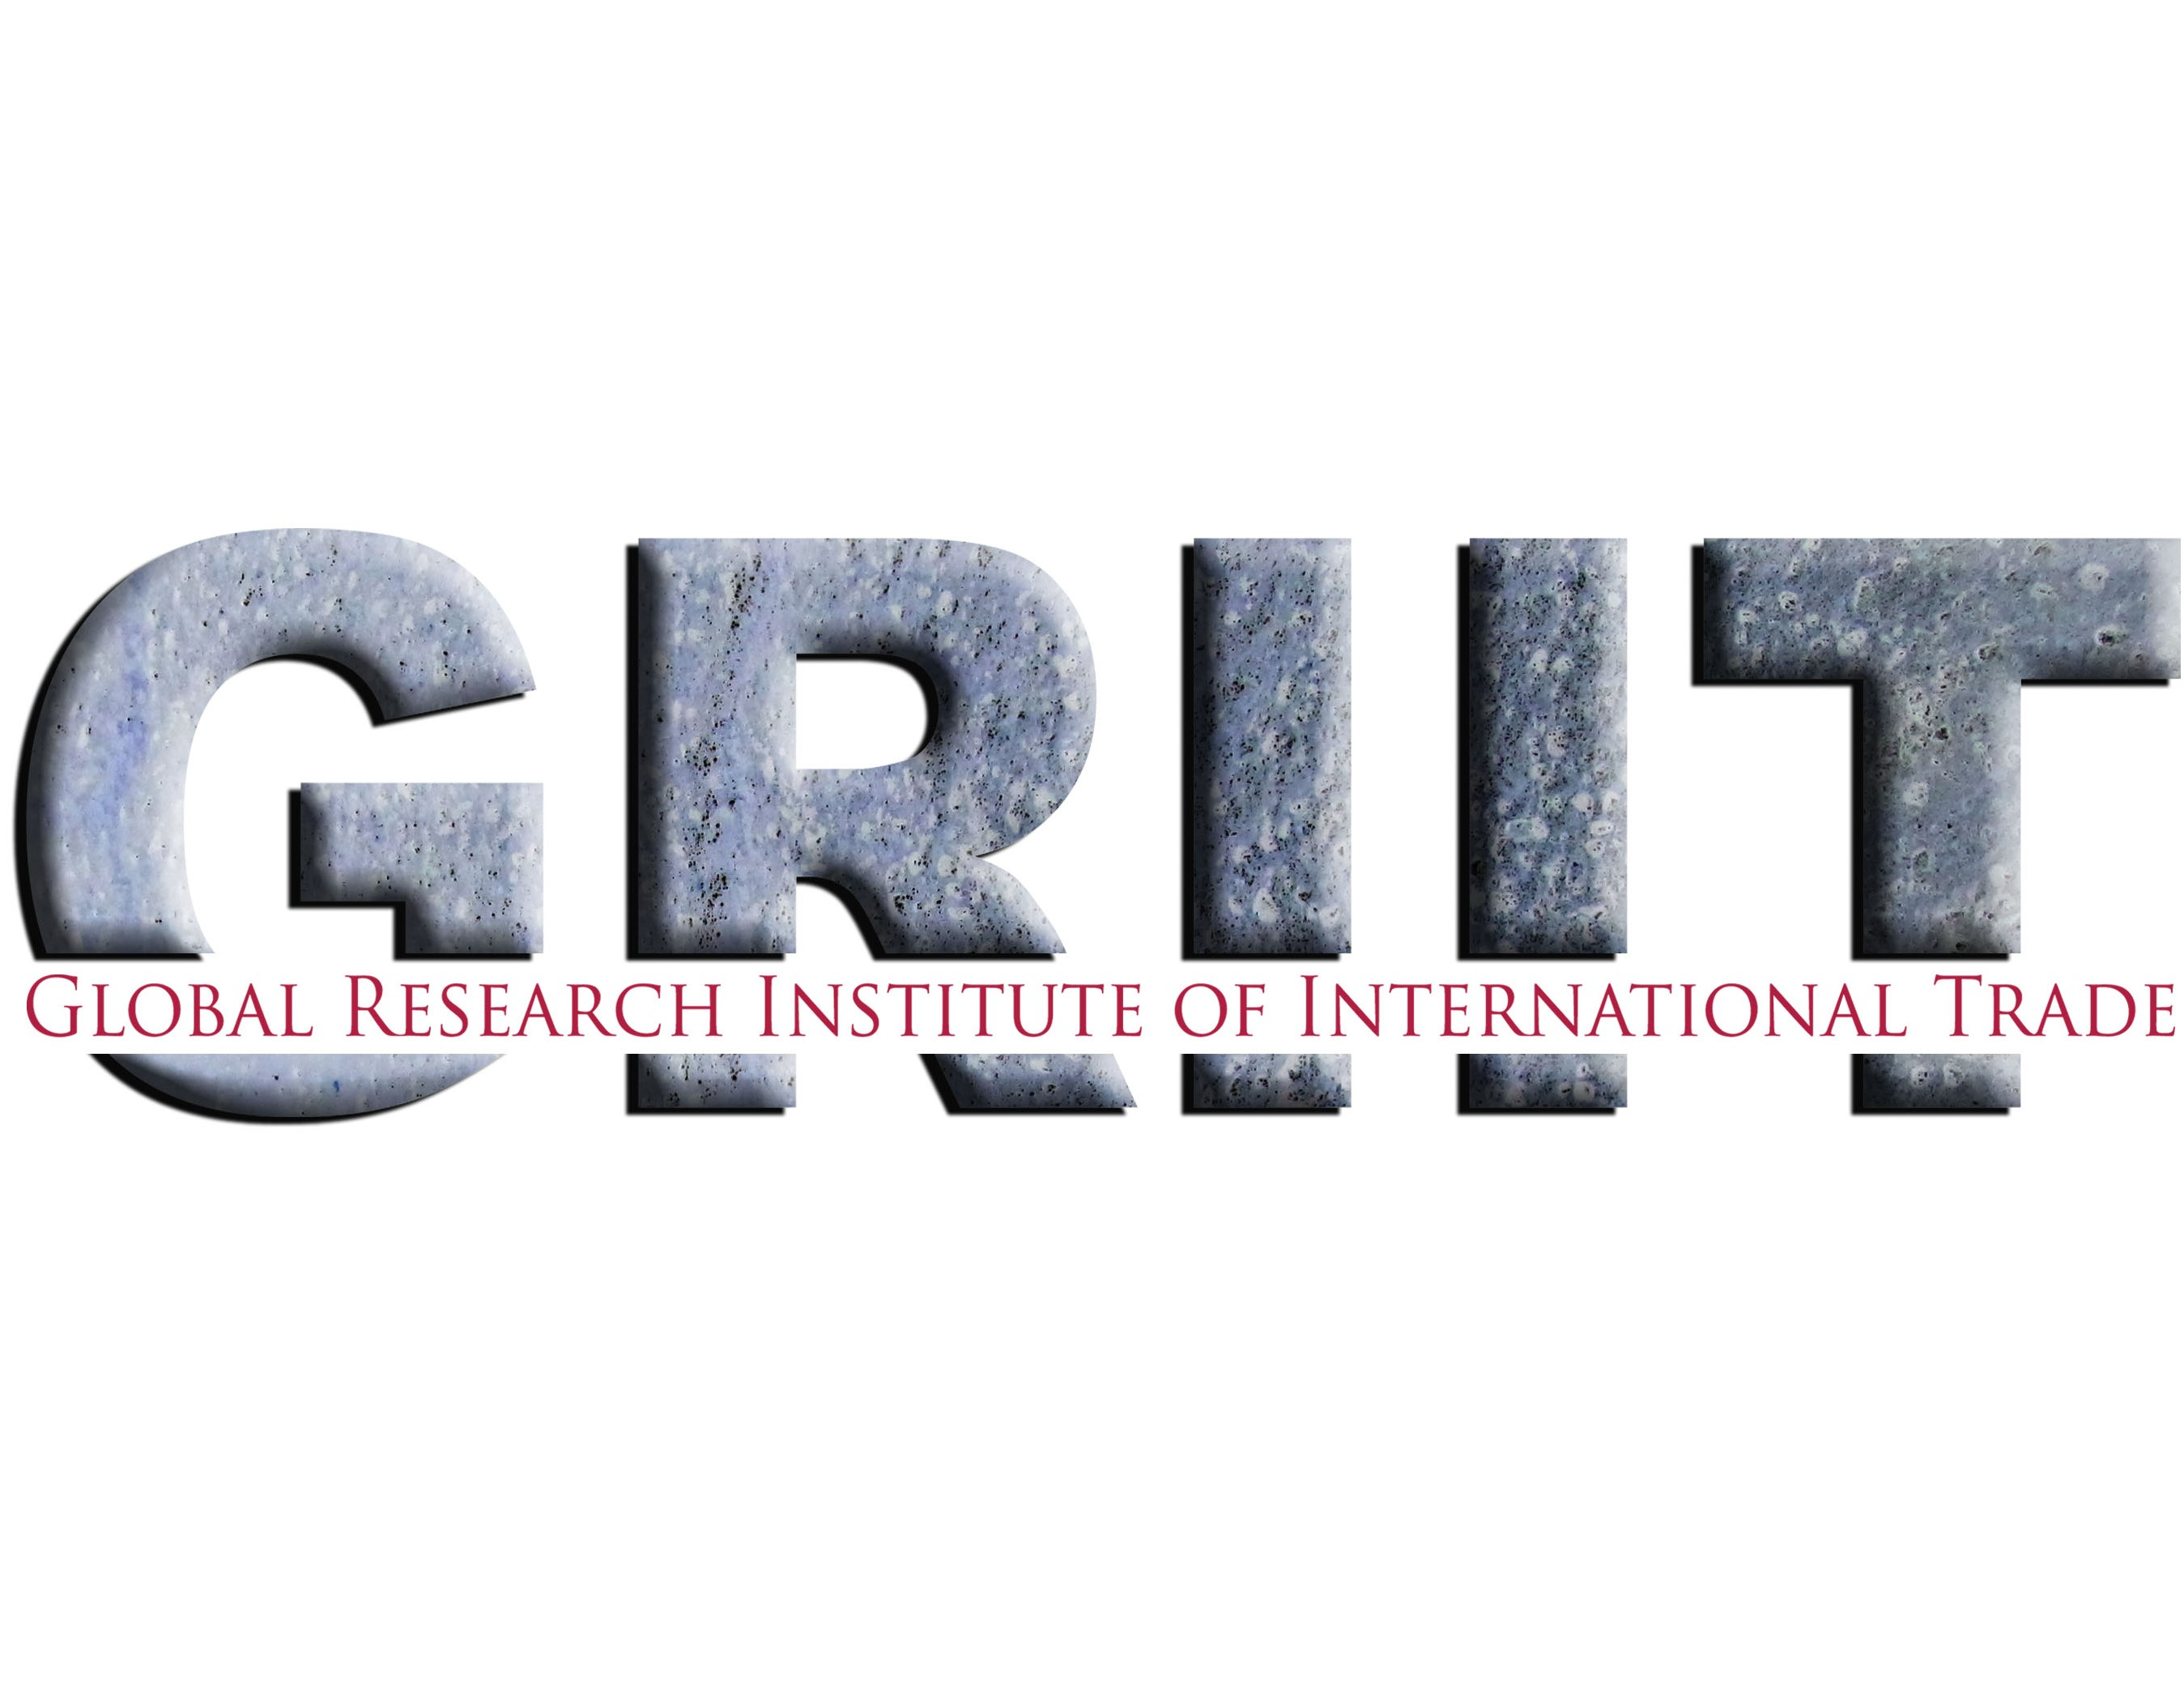 Global Research Institute of International Trade Logo